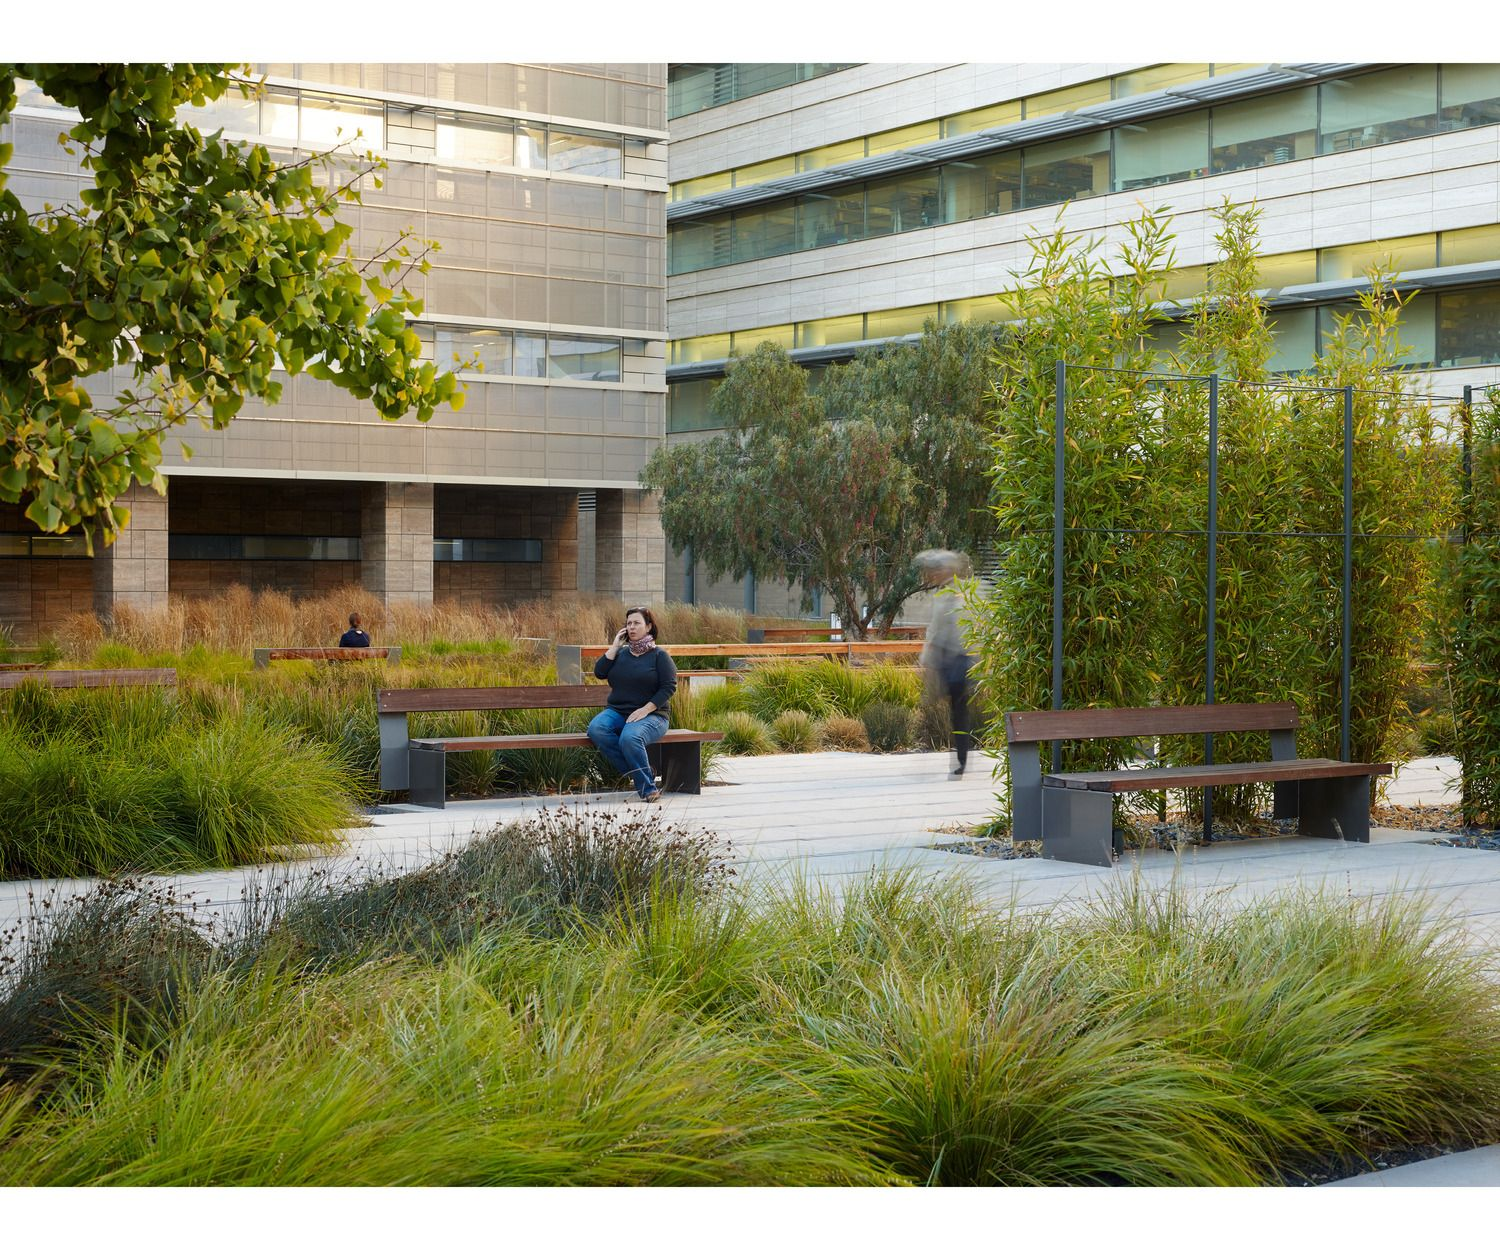 Modern Landscape Architecture Design: Use Grasses And Sedges With A Variety Of Colour, Texture